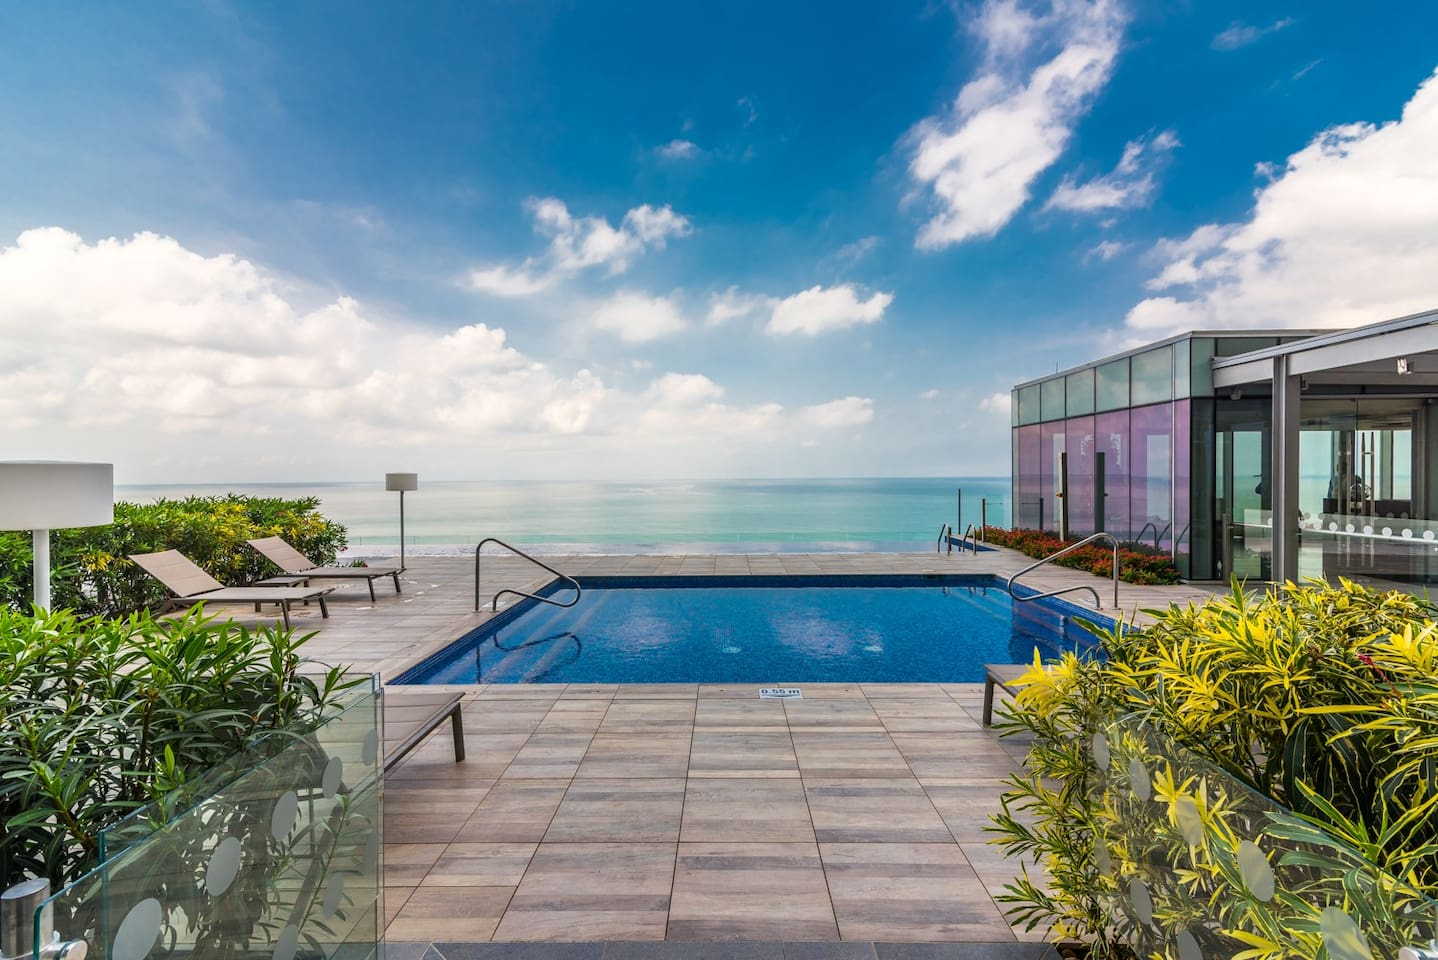 H2, the most exclusive condominium that can be found in Cartagena de Indias, has a spectacular infinity pool, jacuzzi, gym area, SPA, sauna, Turkish, barbecue area, gazebo, near the center of Cartagena and a few steps from the Beach